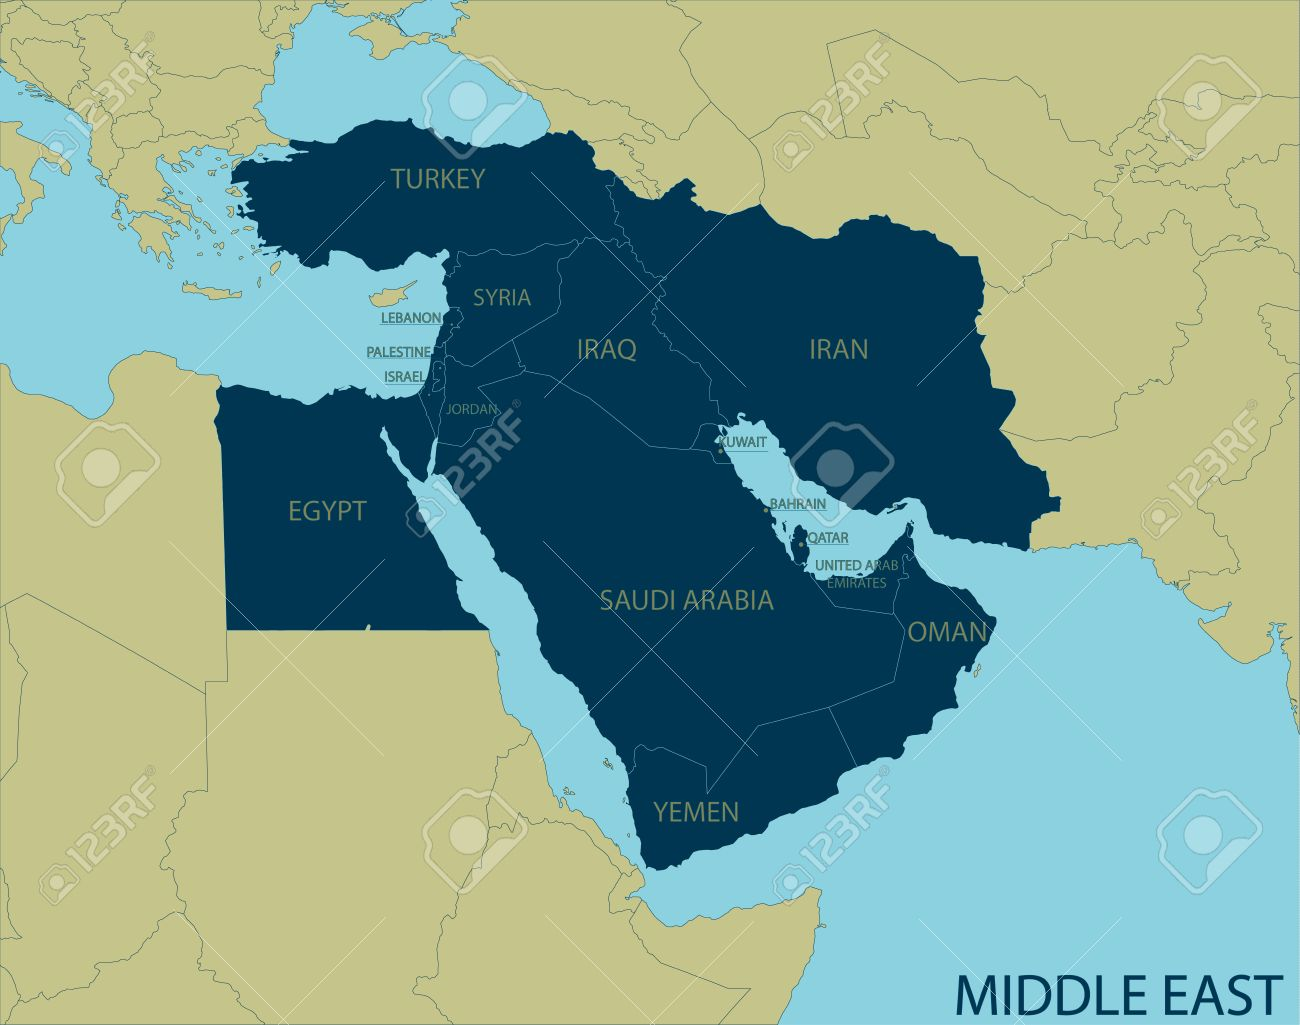 Middle East Map - 52000837